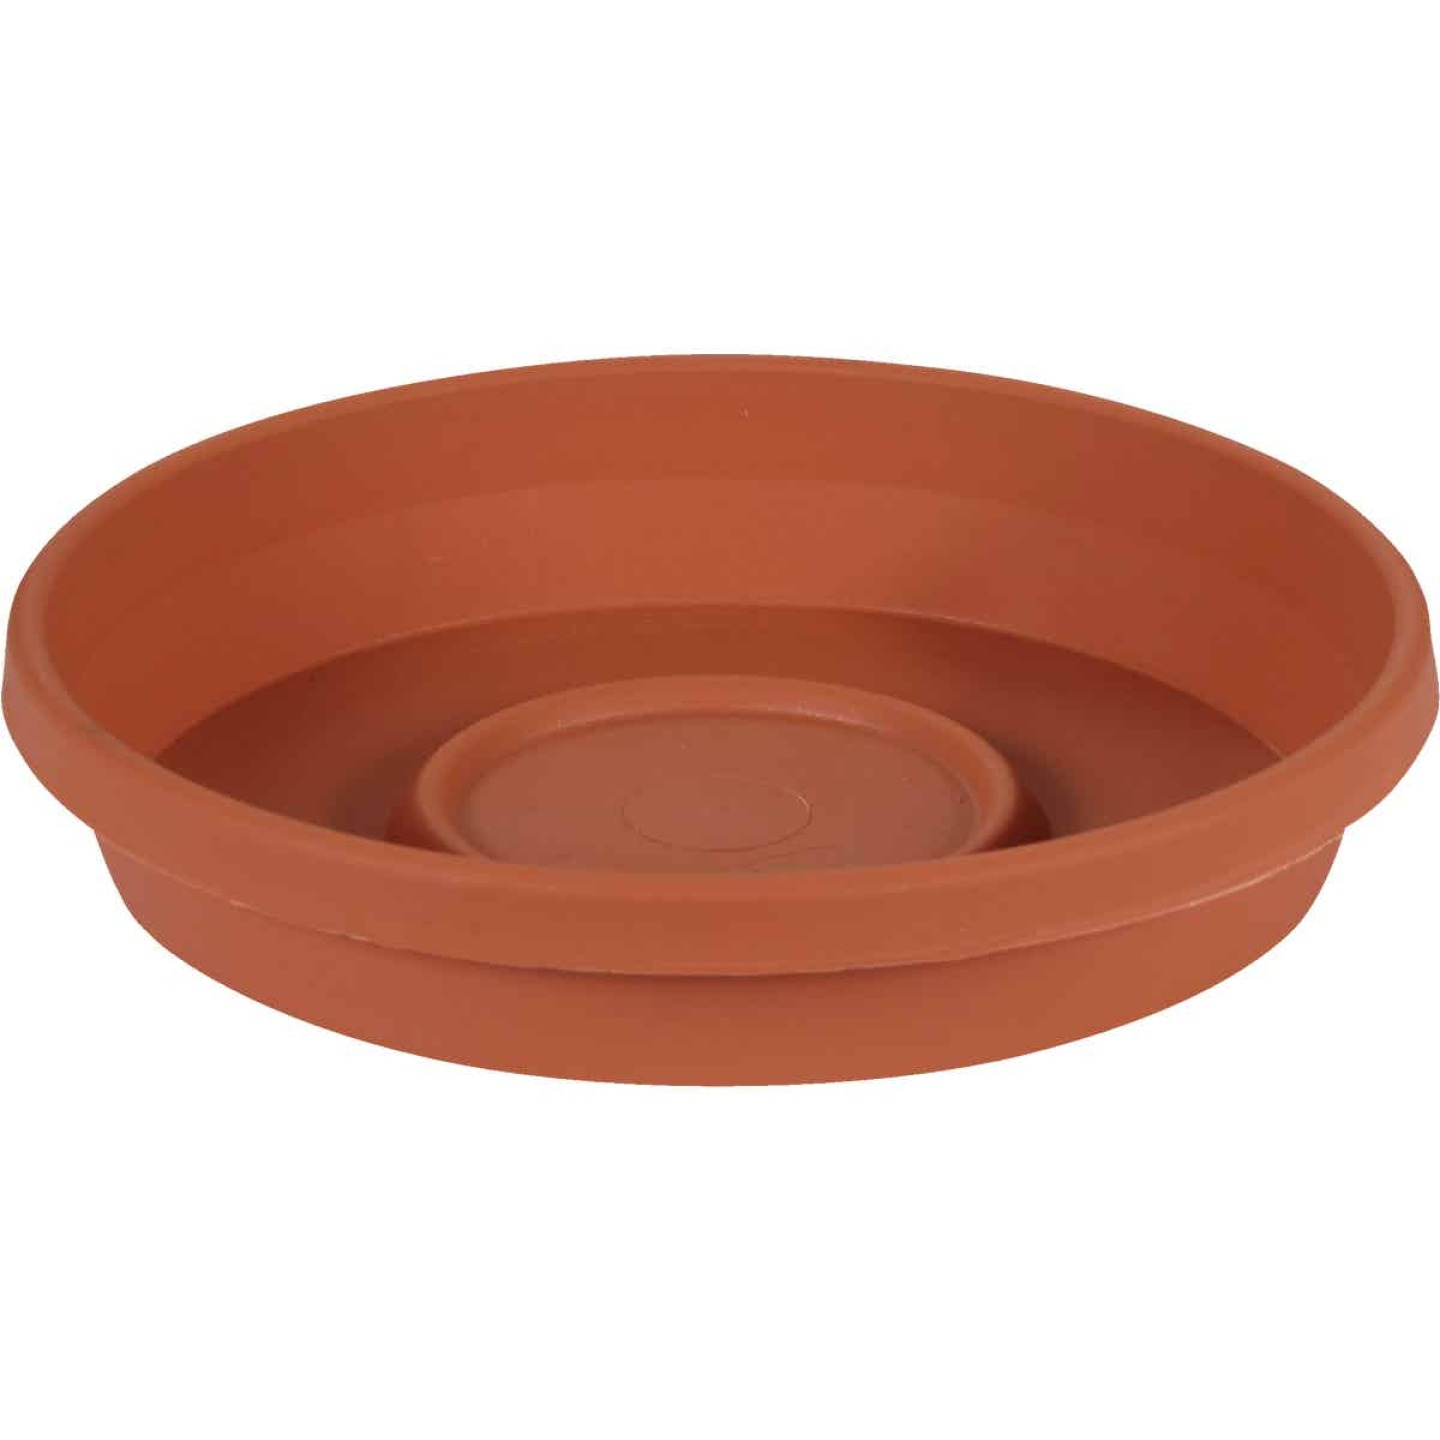 Bloem 14 In. Terracotta Poly Classic Flower Pot Saucer Image 1